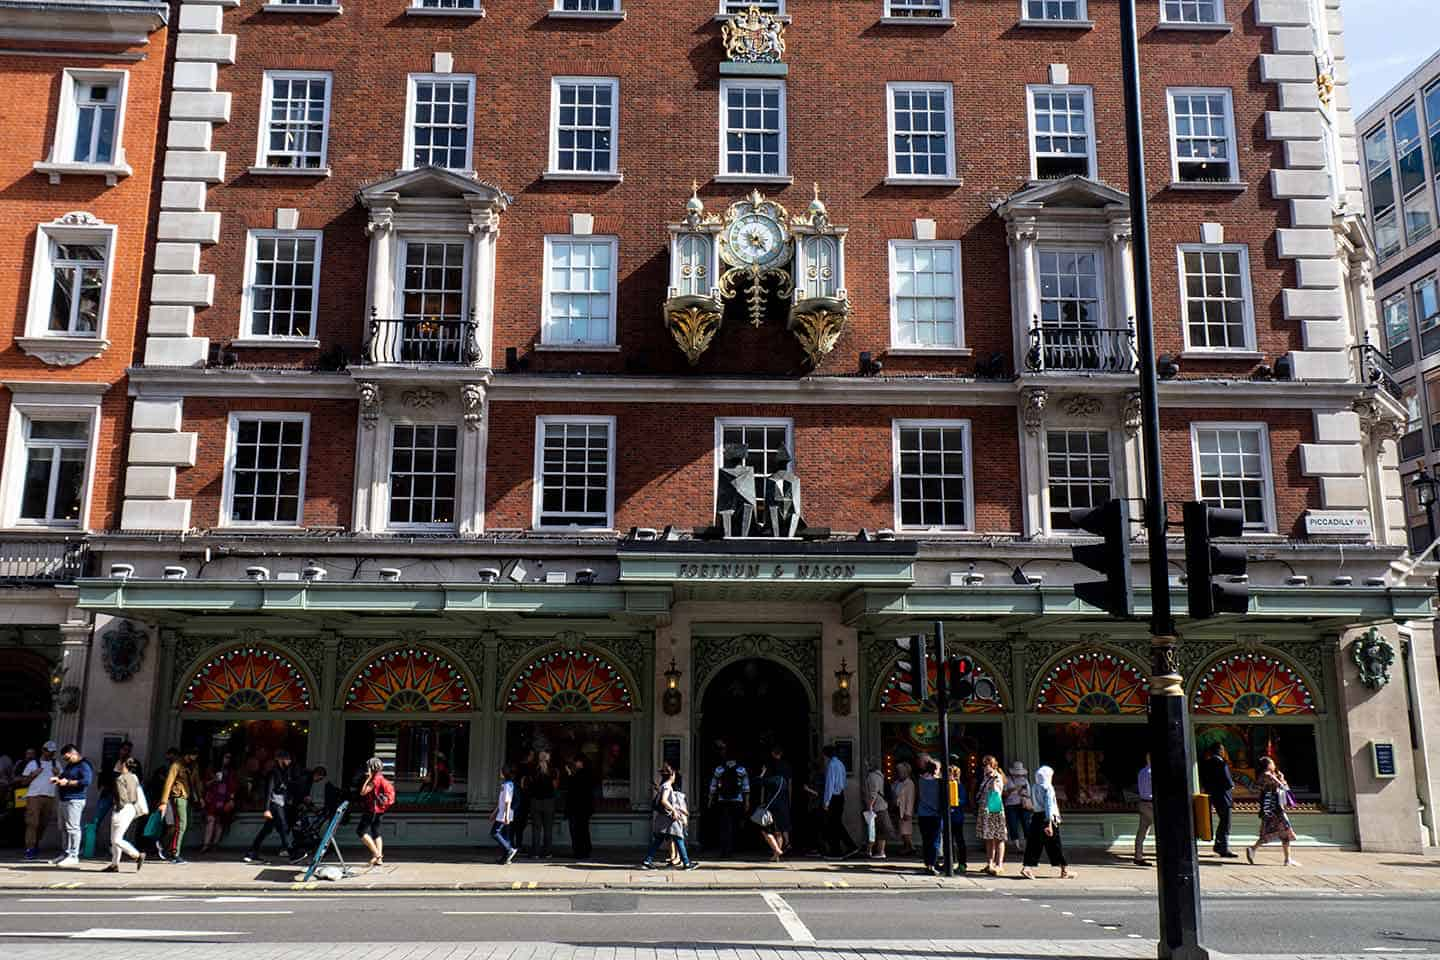 Image of the famous Fortnum & Mason department store in London